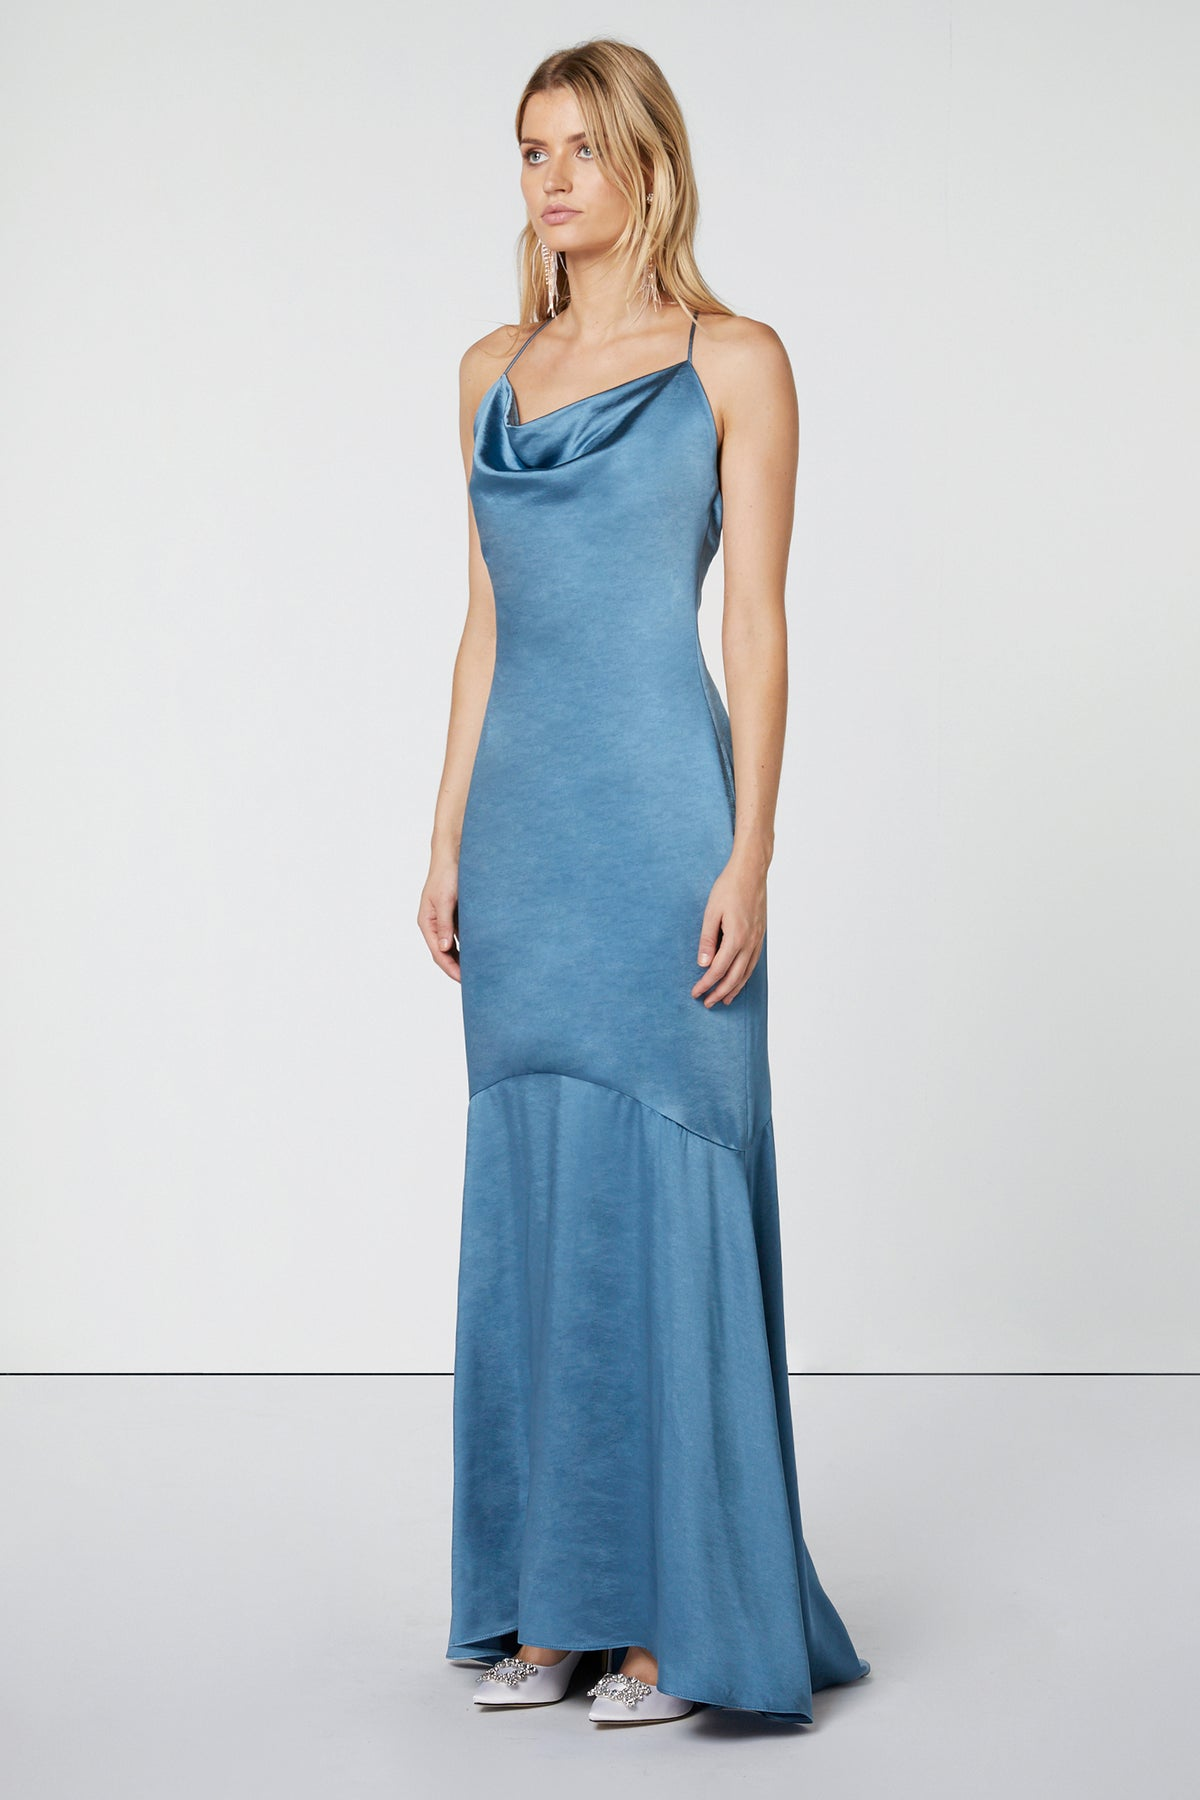 AISLE DRESS